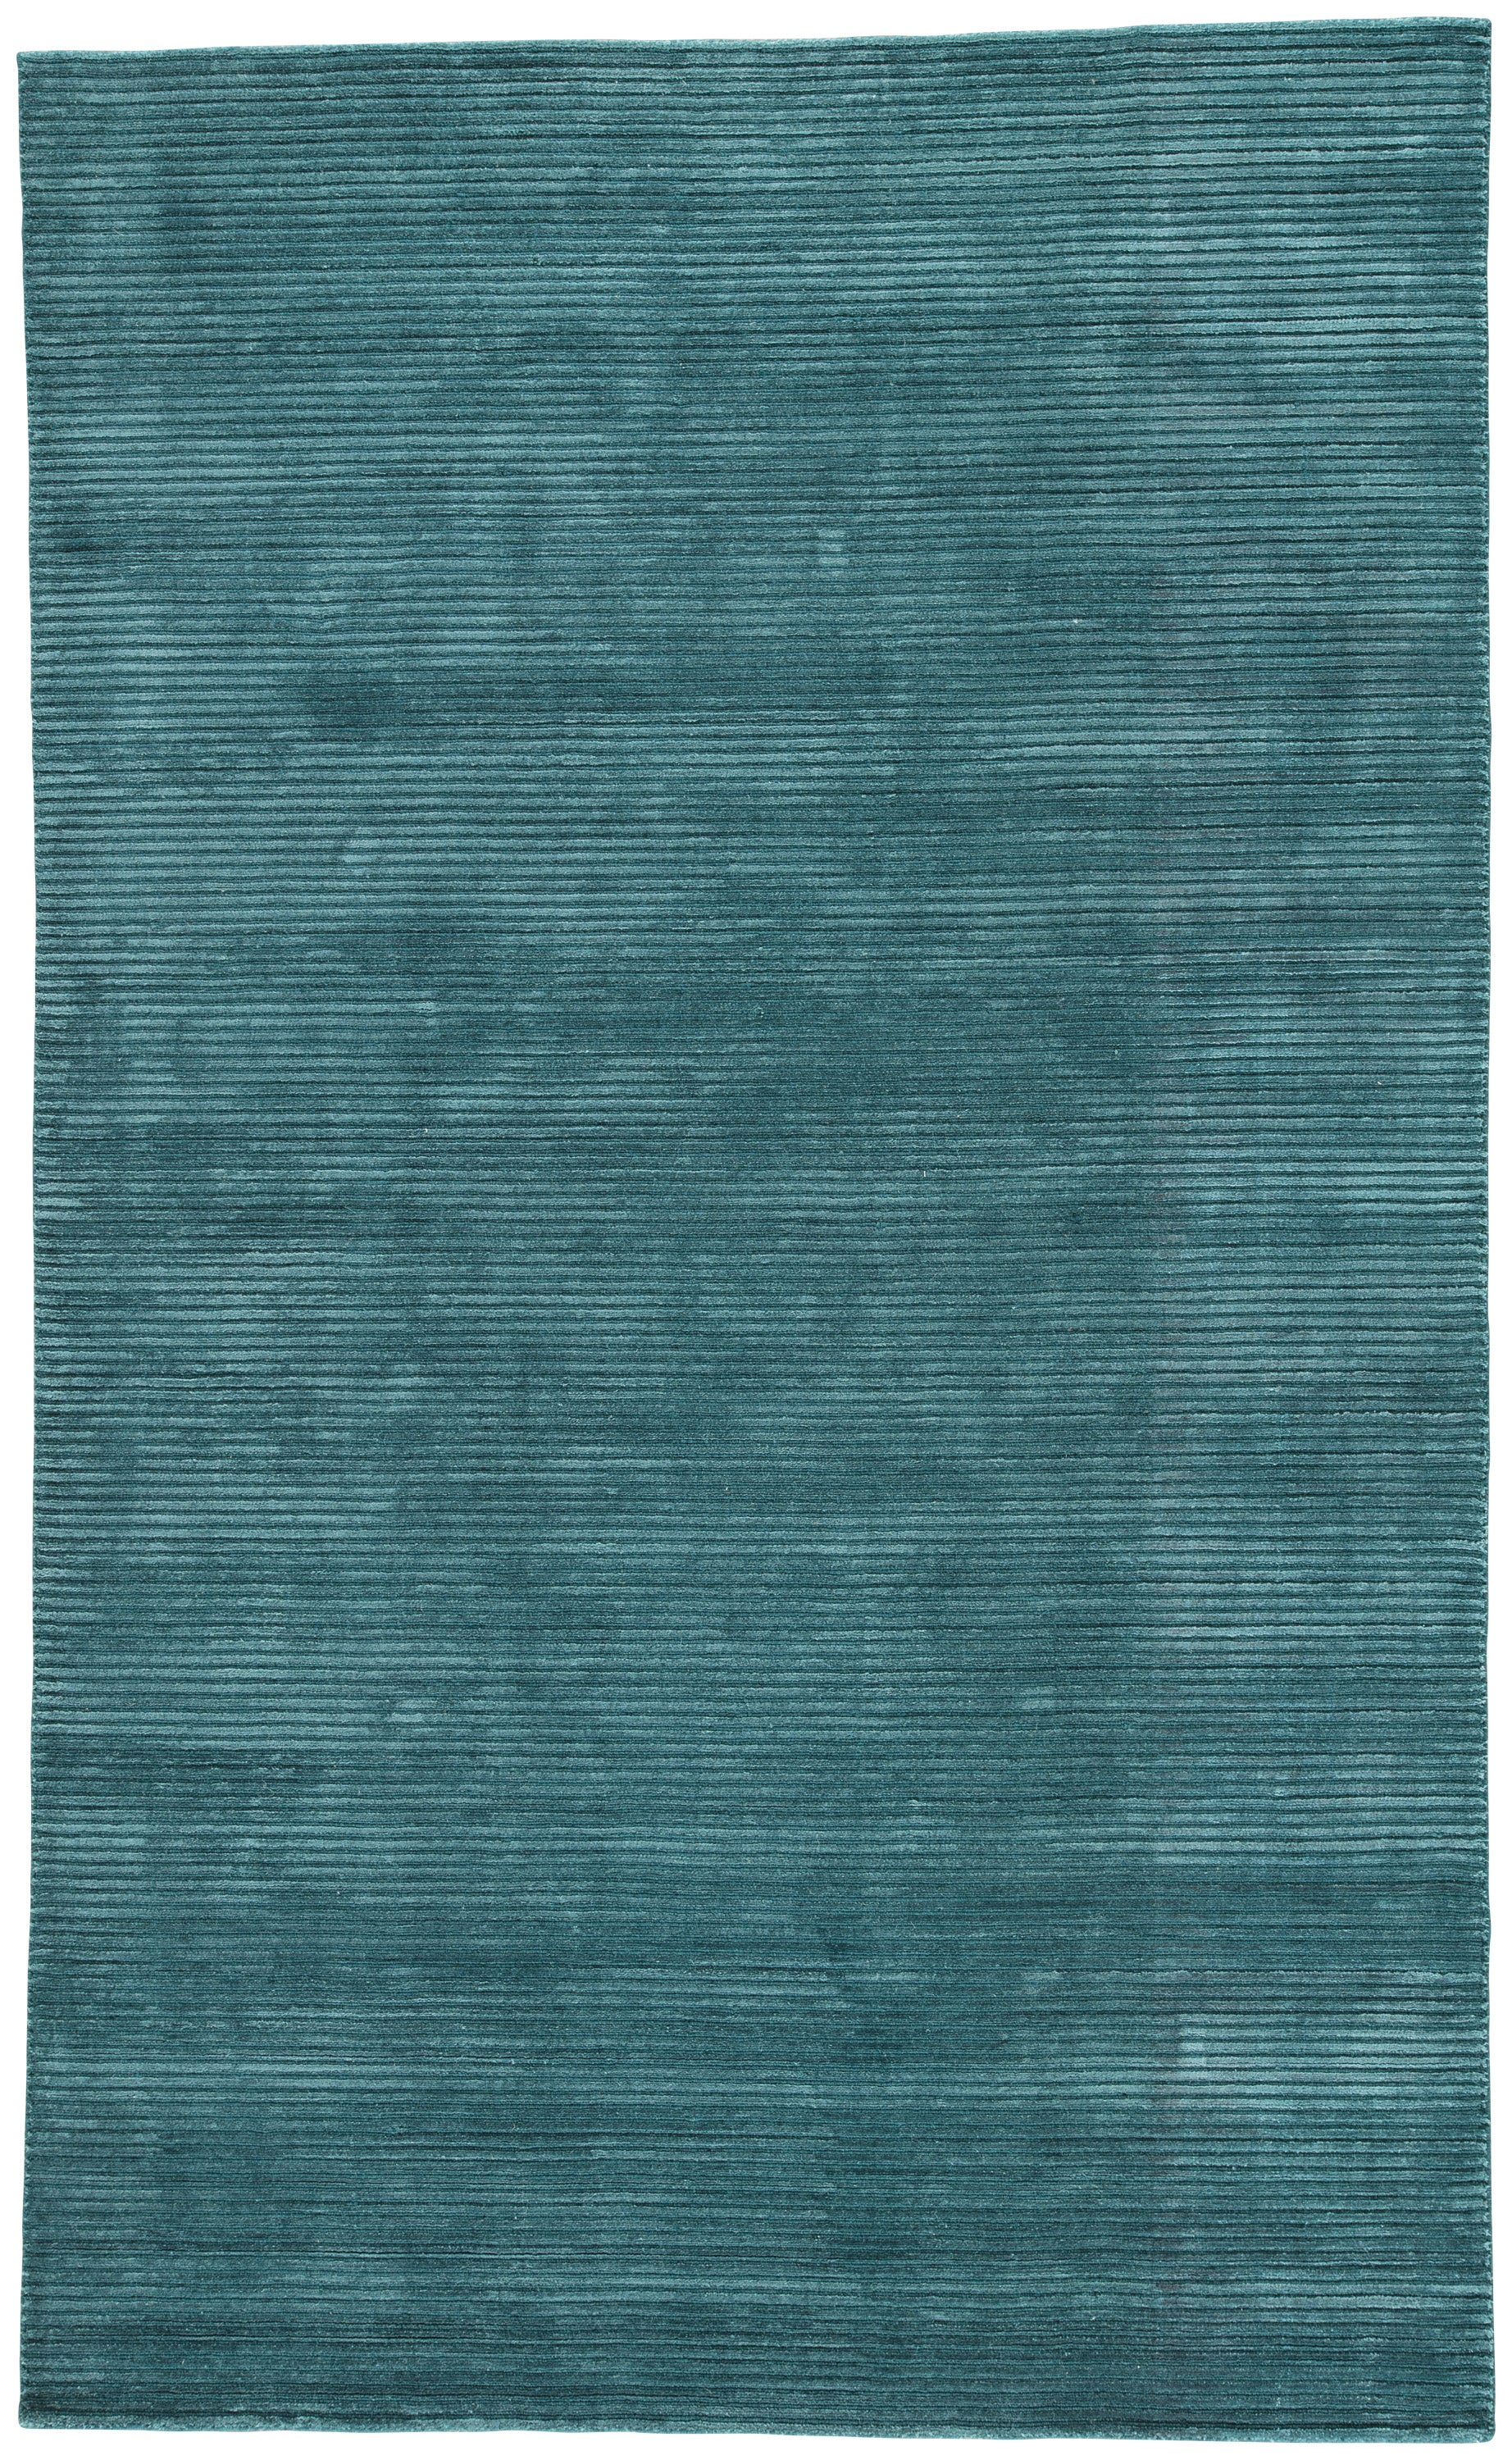 Rectangle 5x8 Green Solid Hand Loomed Blends Modern recommended for Kitchen, Bedroom, Bathroom, Dining Room, Office, Hallway, Living Room